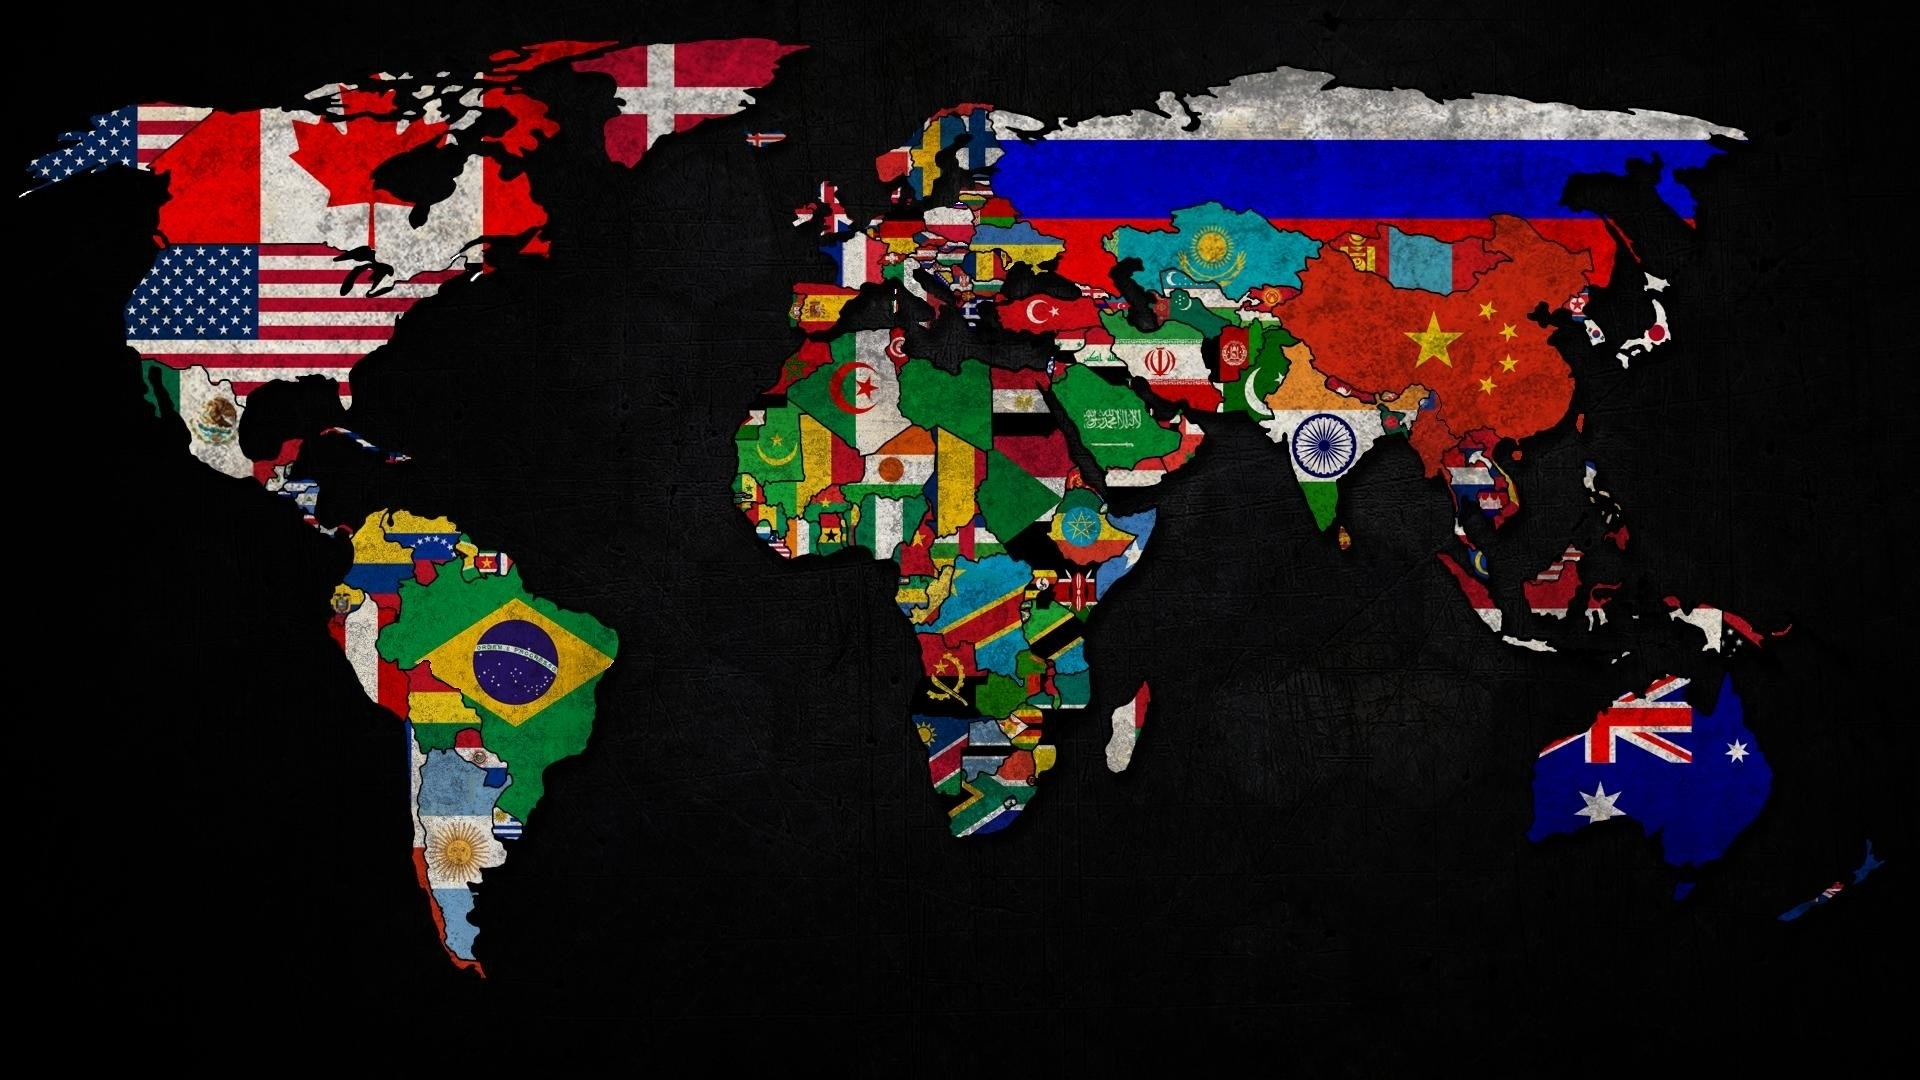 148 world map hd wallpapers | background images - wallpaper abyss